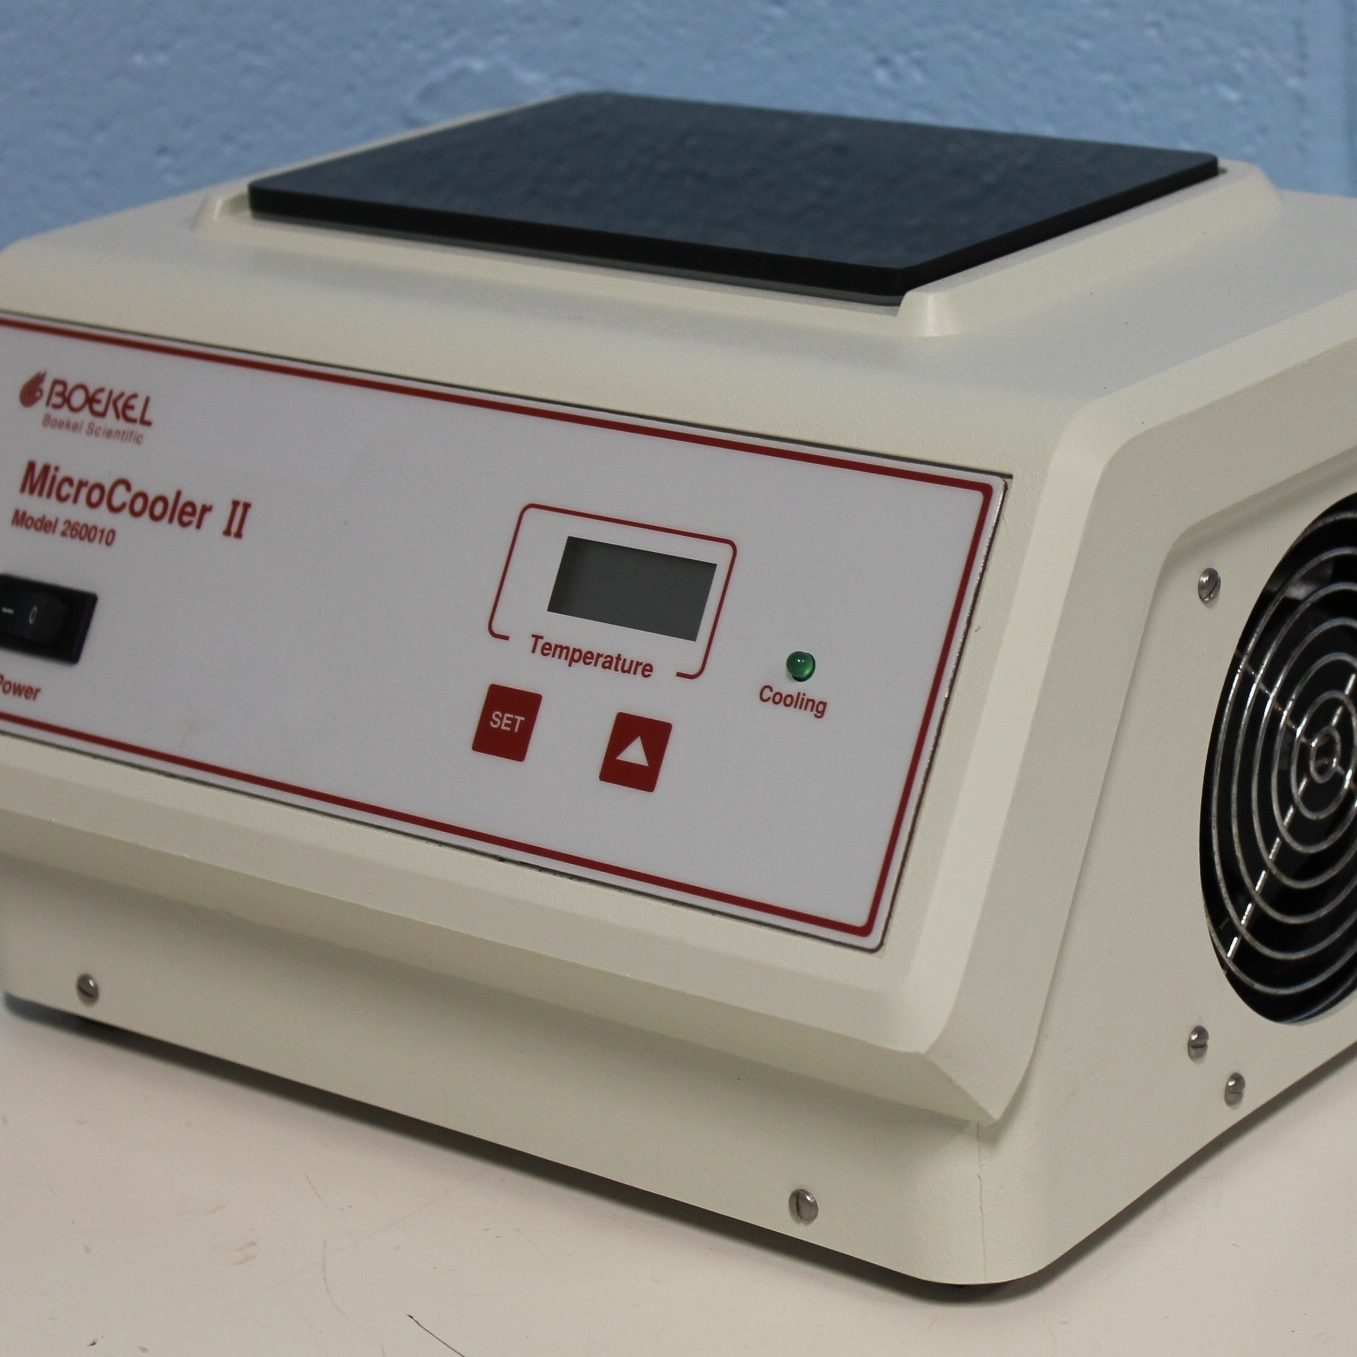 Boekel Scientific MicroCooler II Image